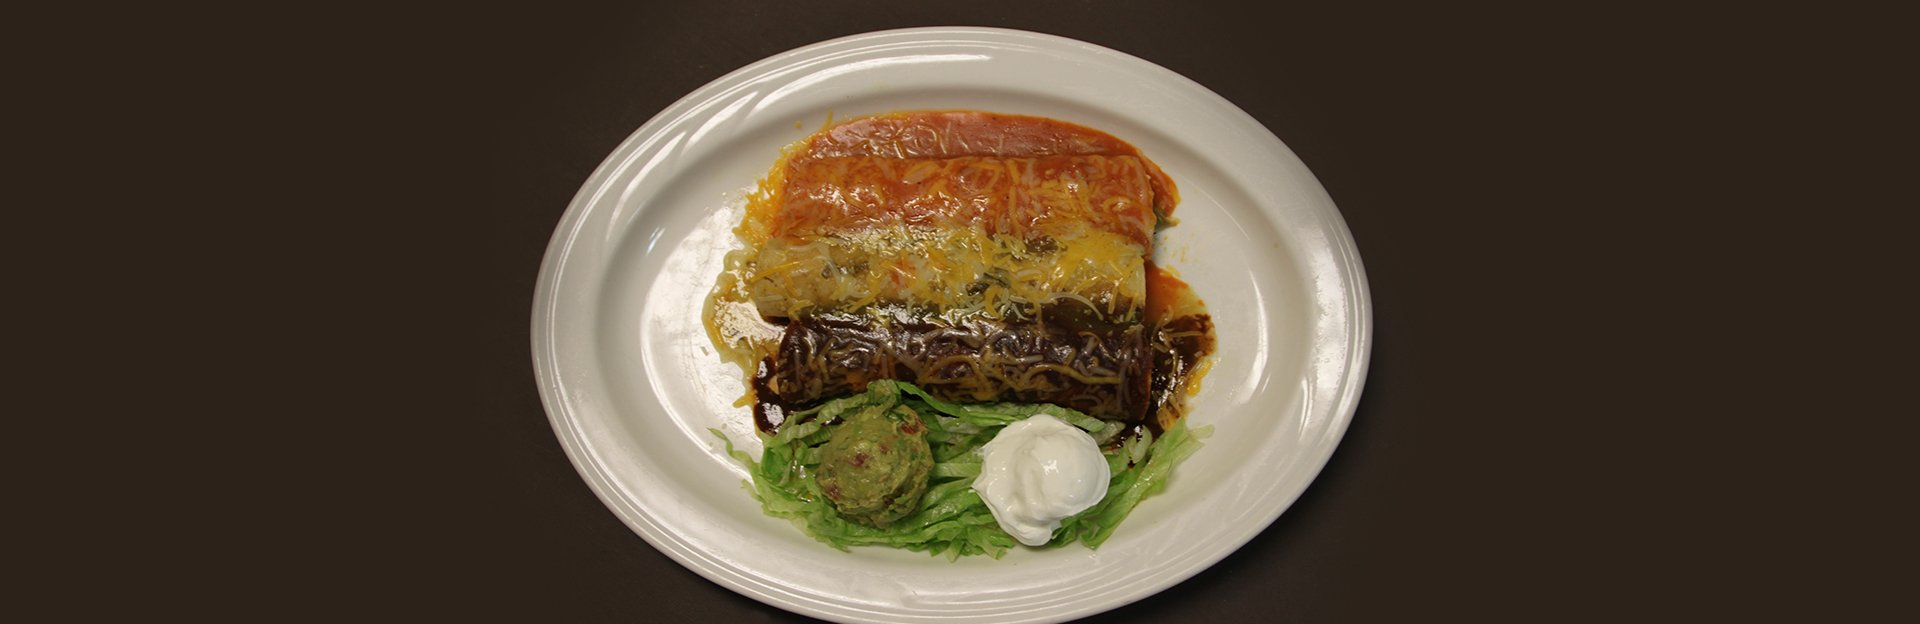 Enchilada Sampler